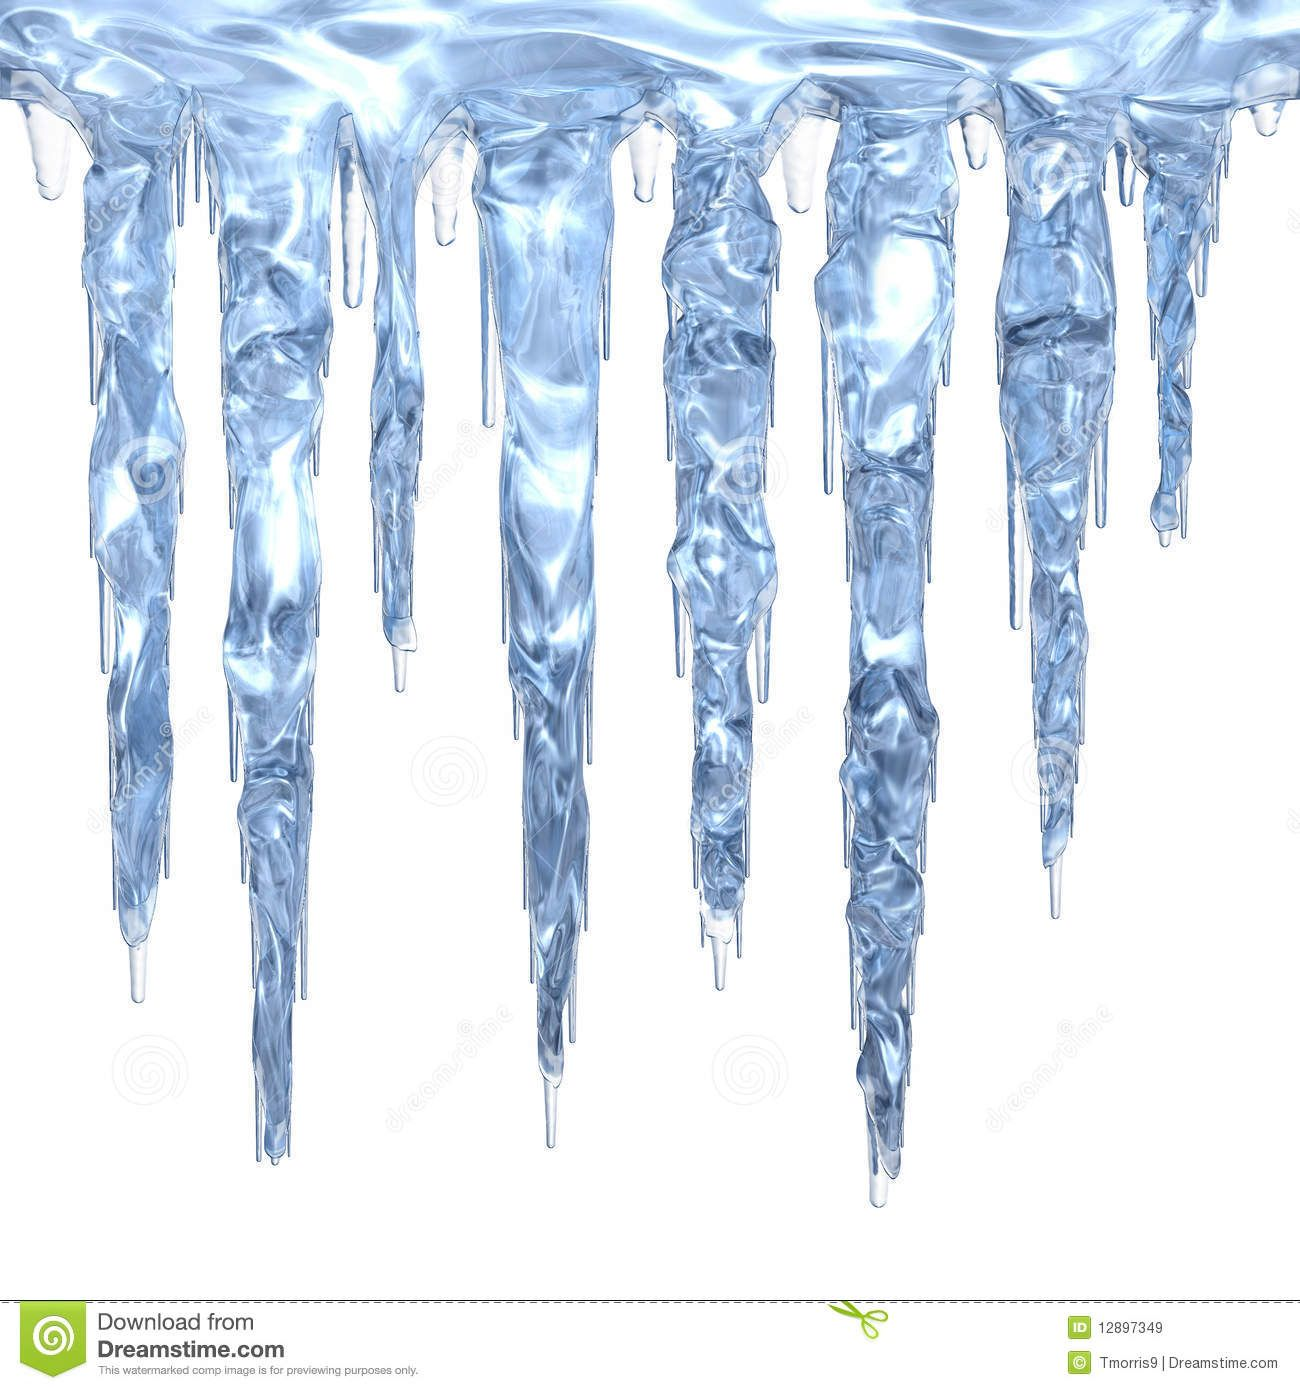 Free download icicle for. Icicles clipart single